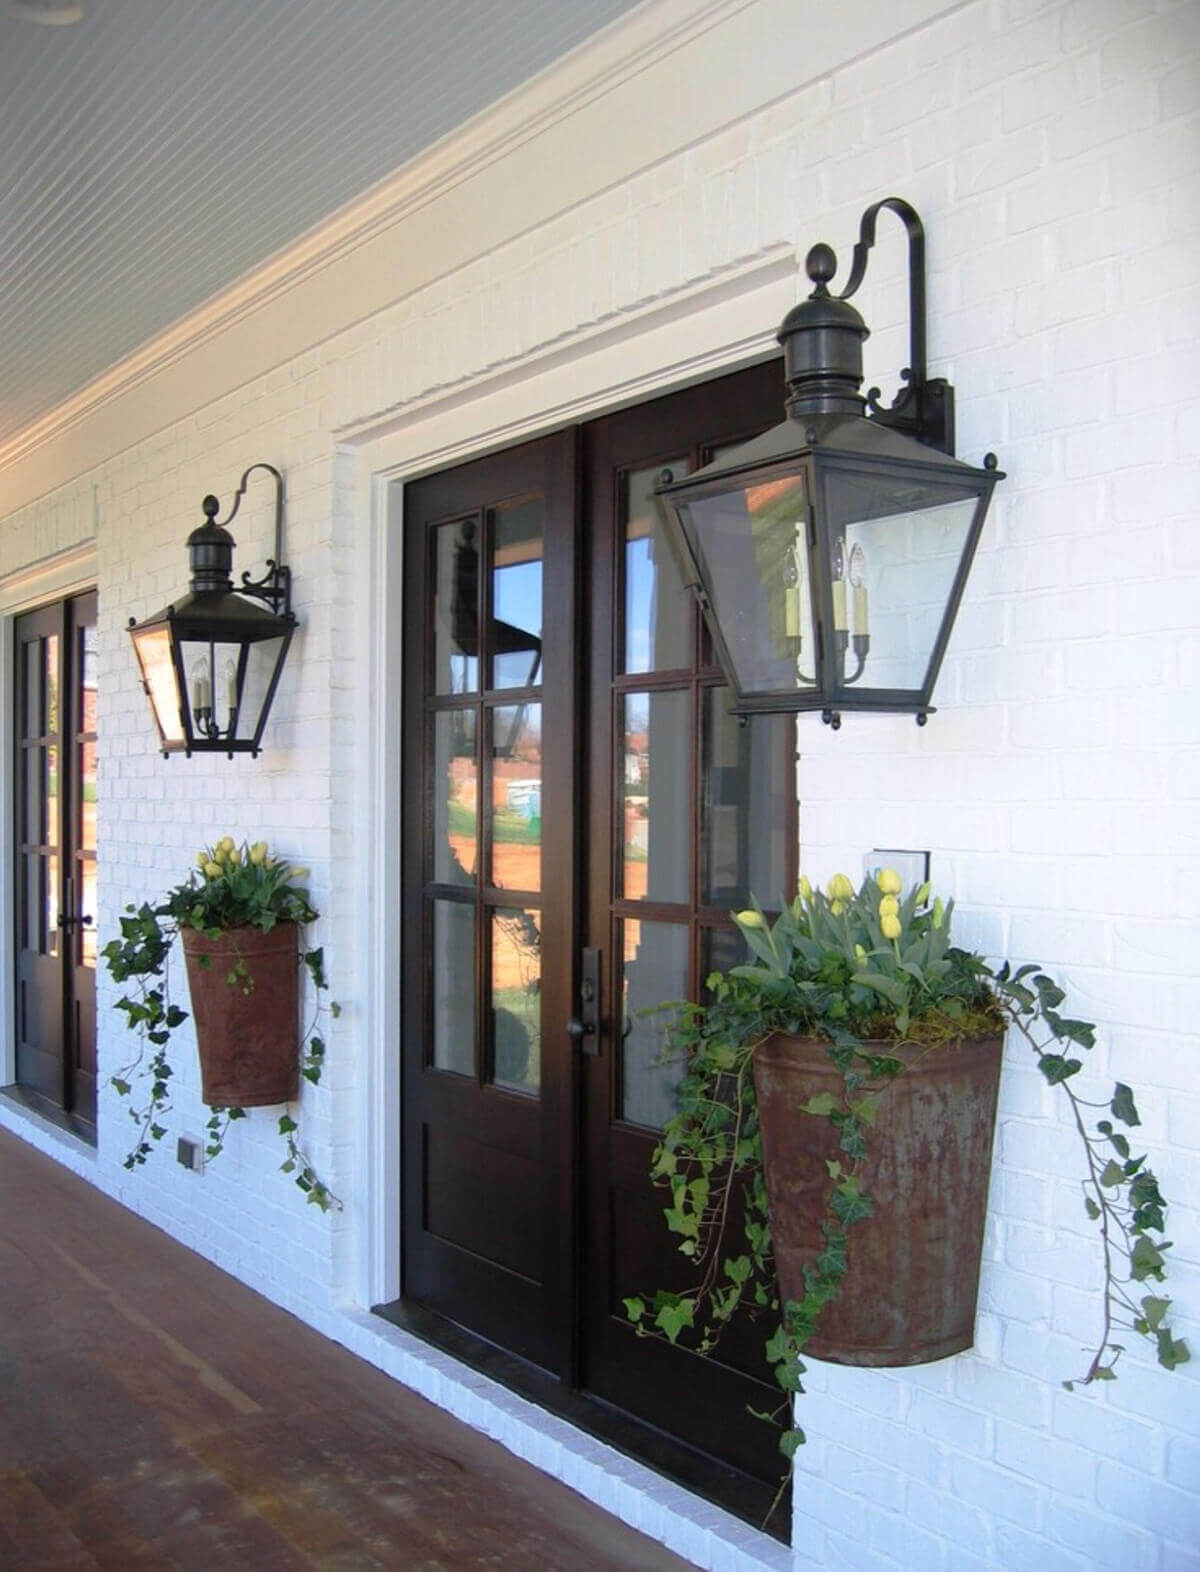 Rusty Metal Planters by the Door